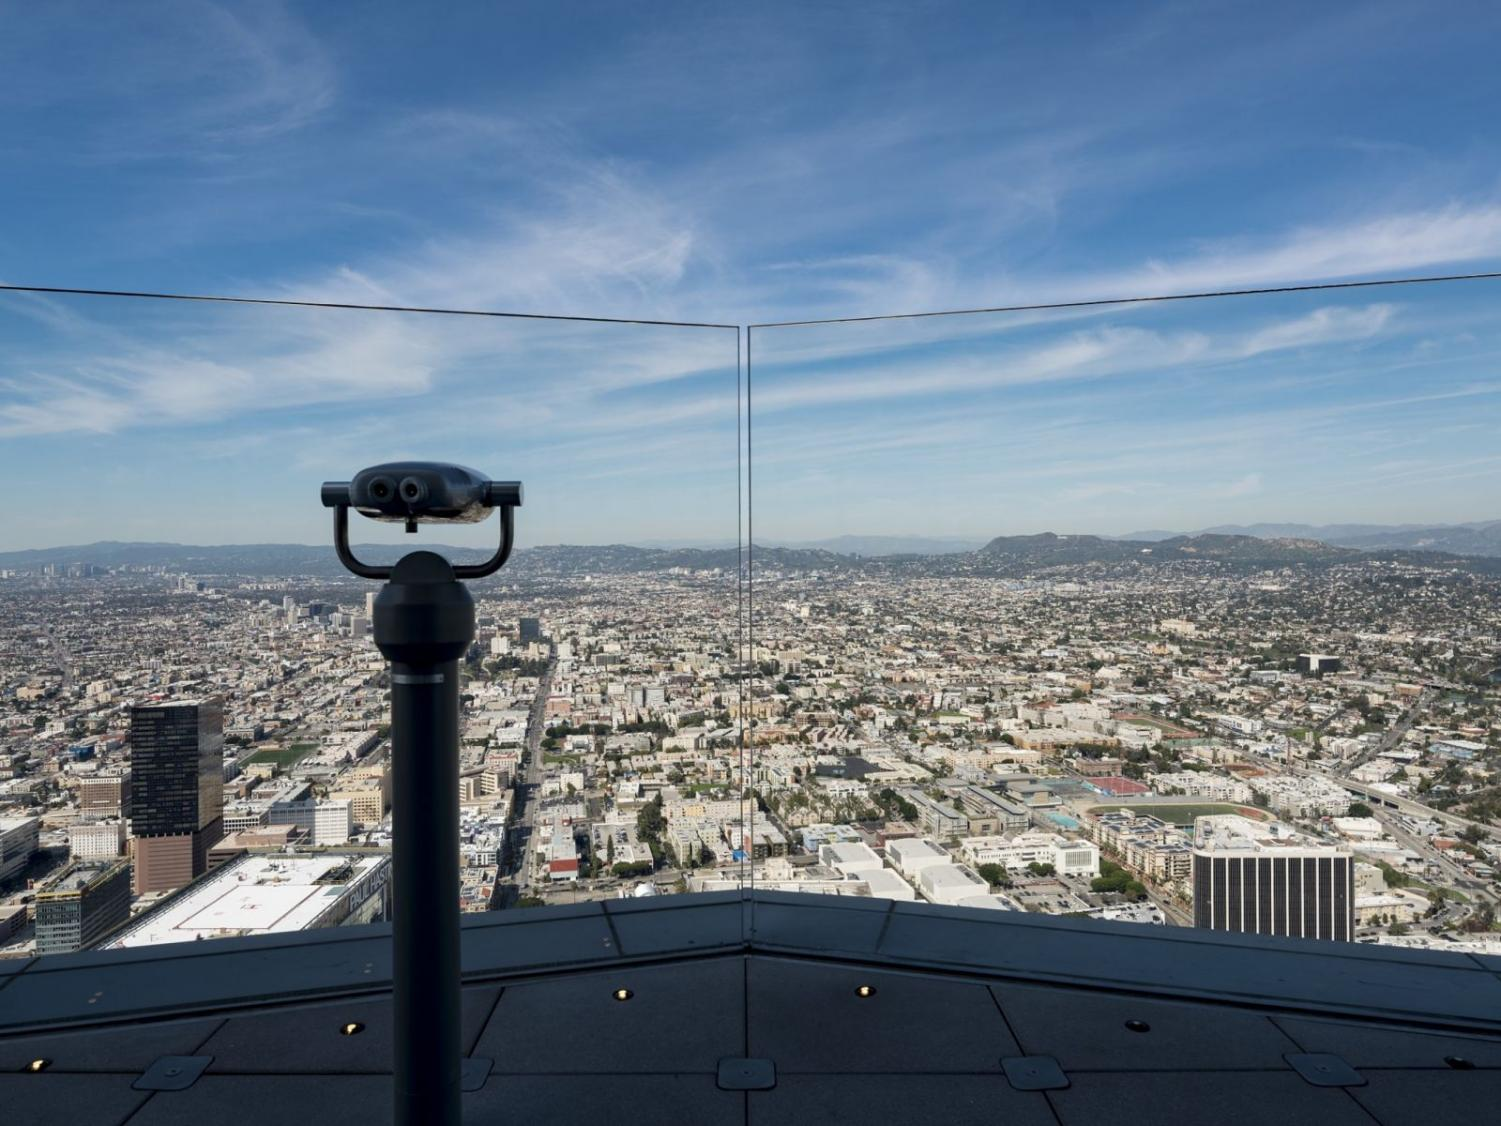 https://www.discoverlosangeles.com/things-to-do/oue-skyspace-la